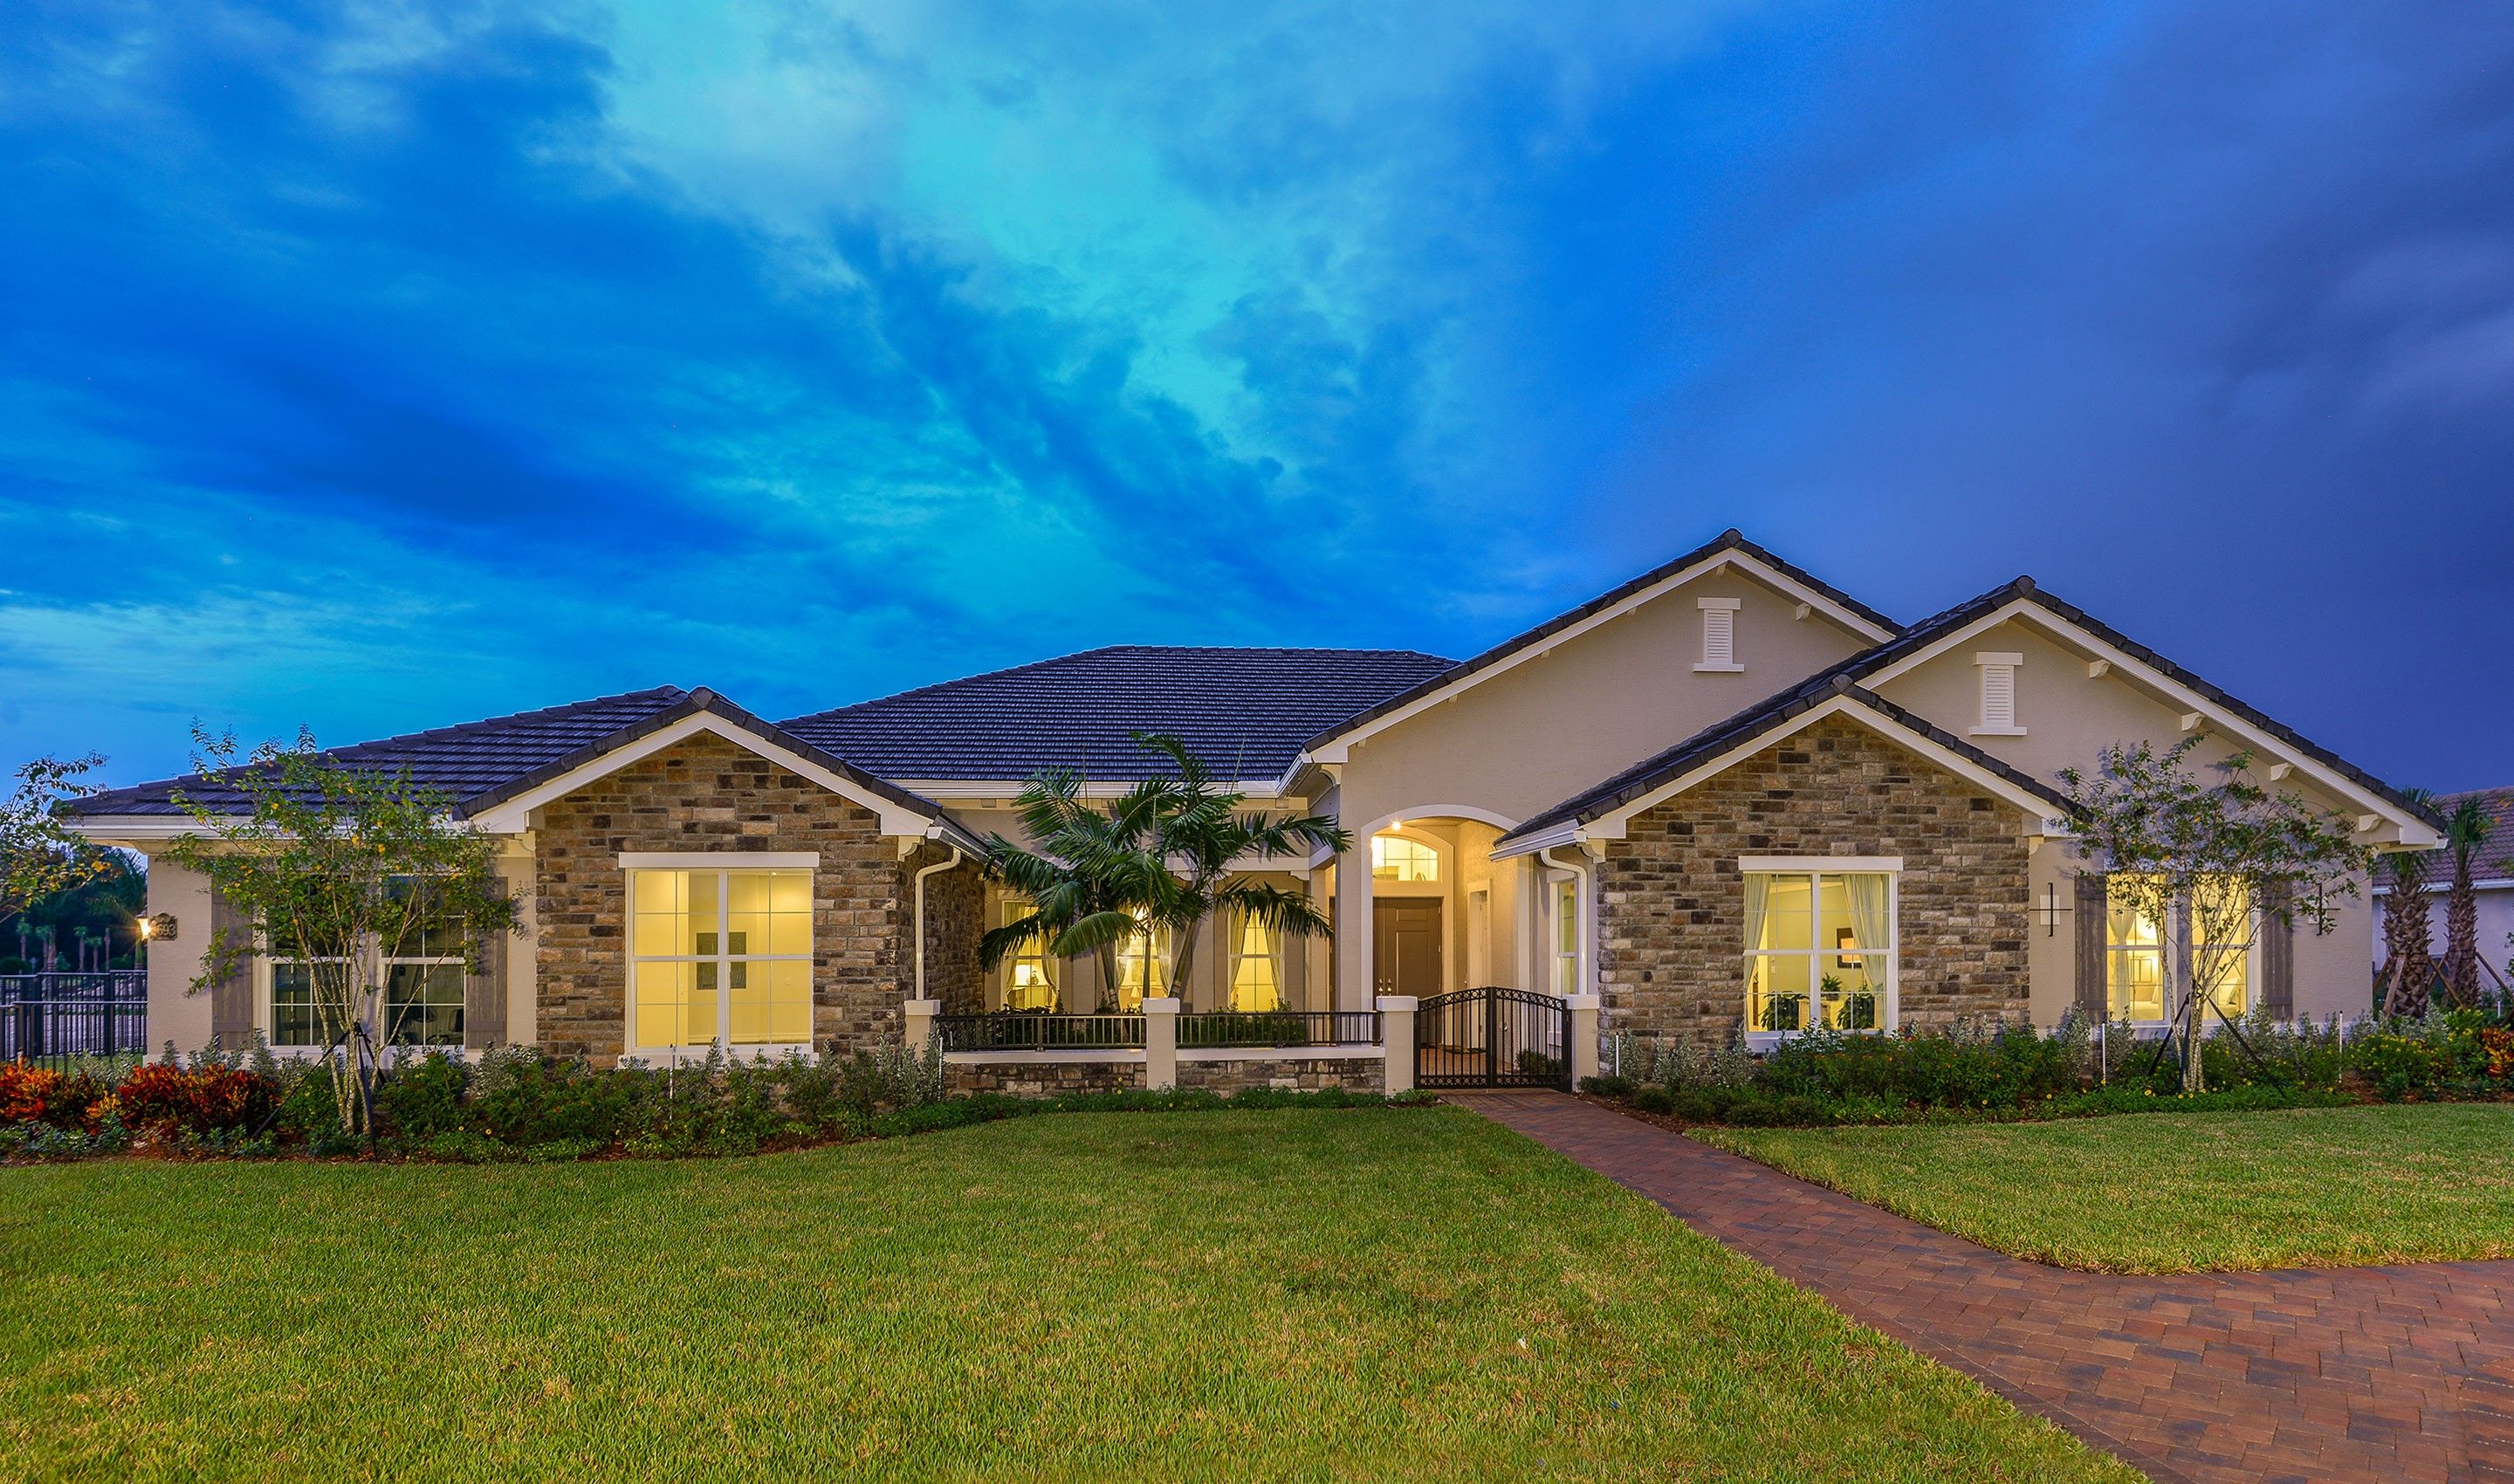 Single Family for Active at Hawthorne 5125 East Sterling Ranch Circle, Homesite 59 Davie, Florida 33314 United States